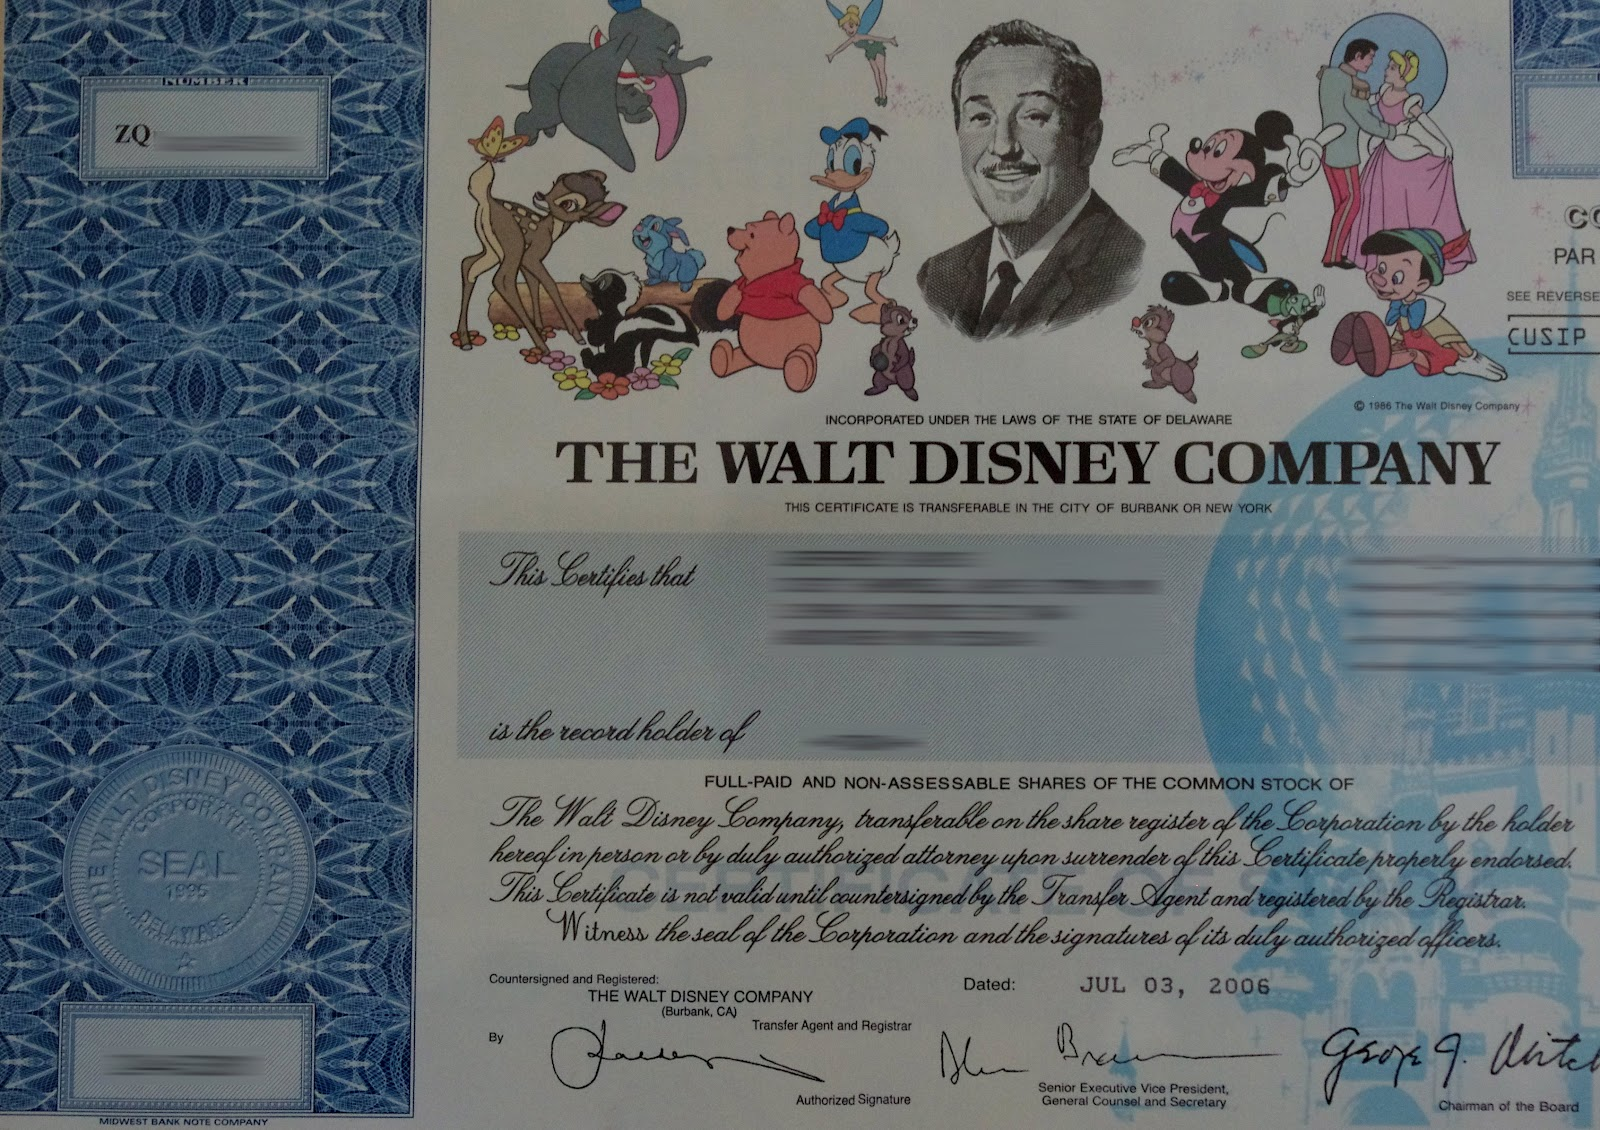 This day in pixar this day in pixar history pixardisney merger this day in pixar history pixardisney merger 1betcityfo Choice Image